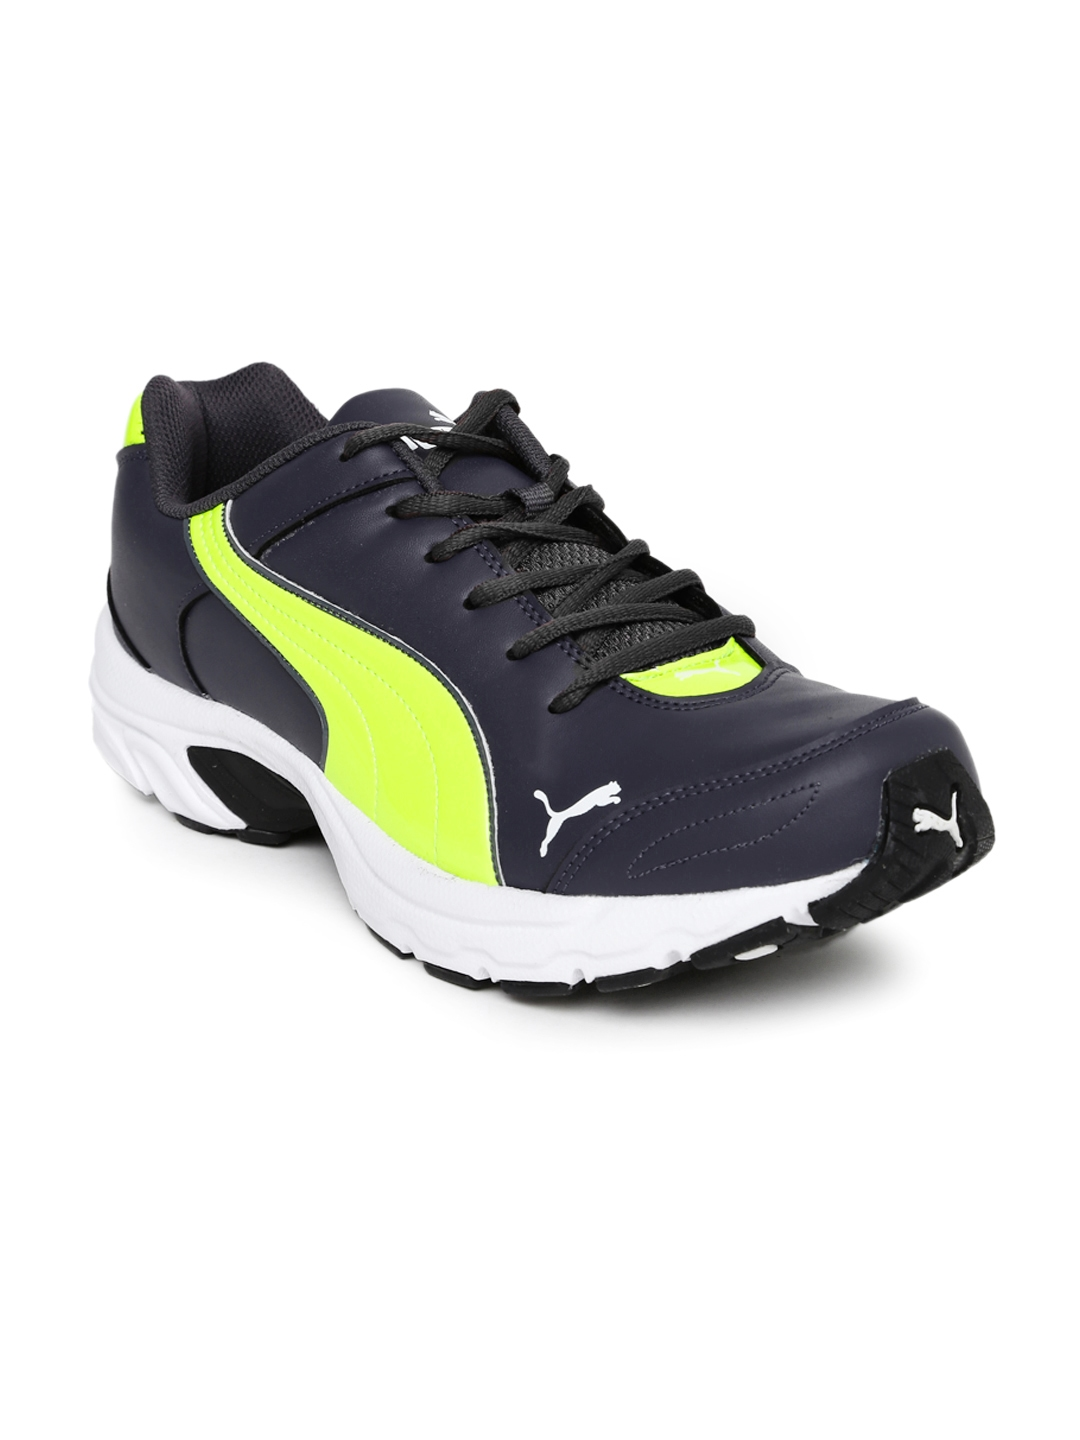 Buy PUMA Men Navy Axis IV XT DP Running Shoes - Sports Shoes for Men ... 4f4e24207859